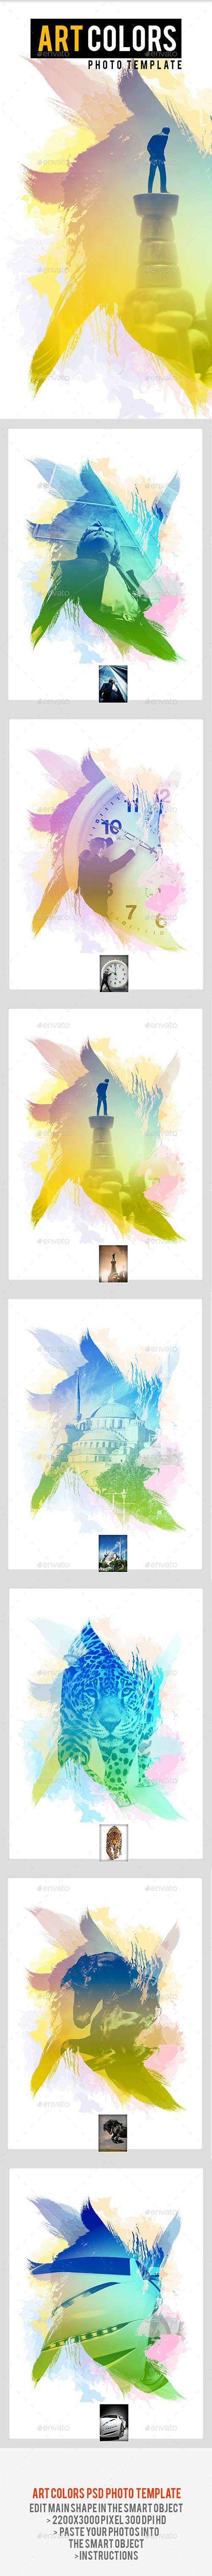 GraphicRiver - Art Colors Photo Template 22612788